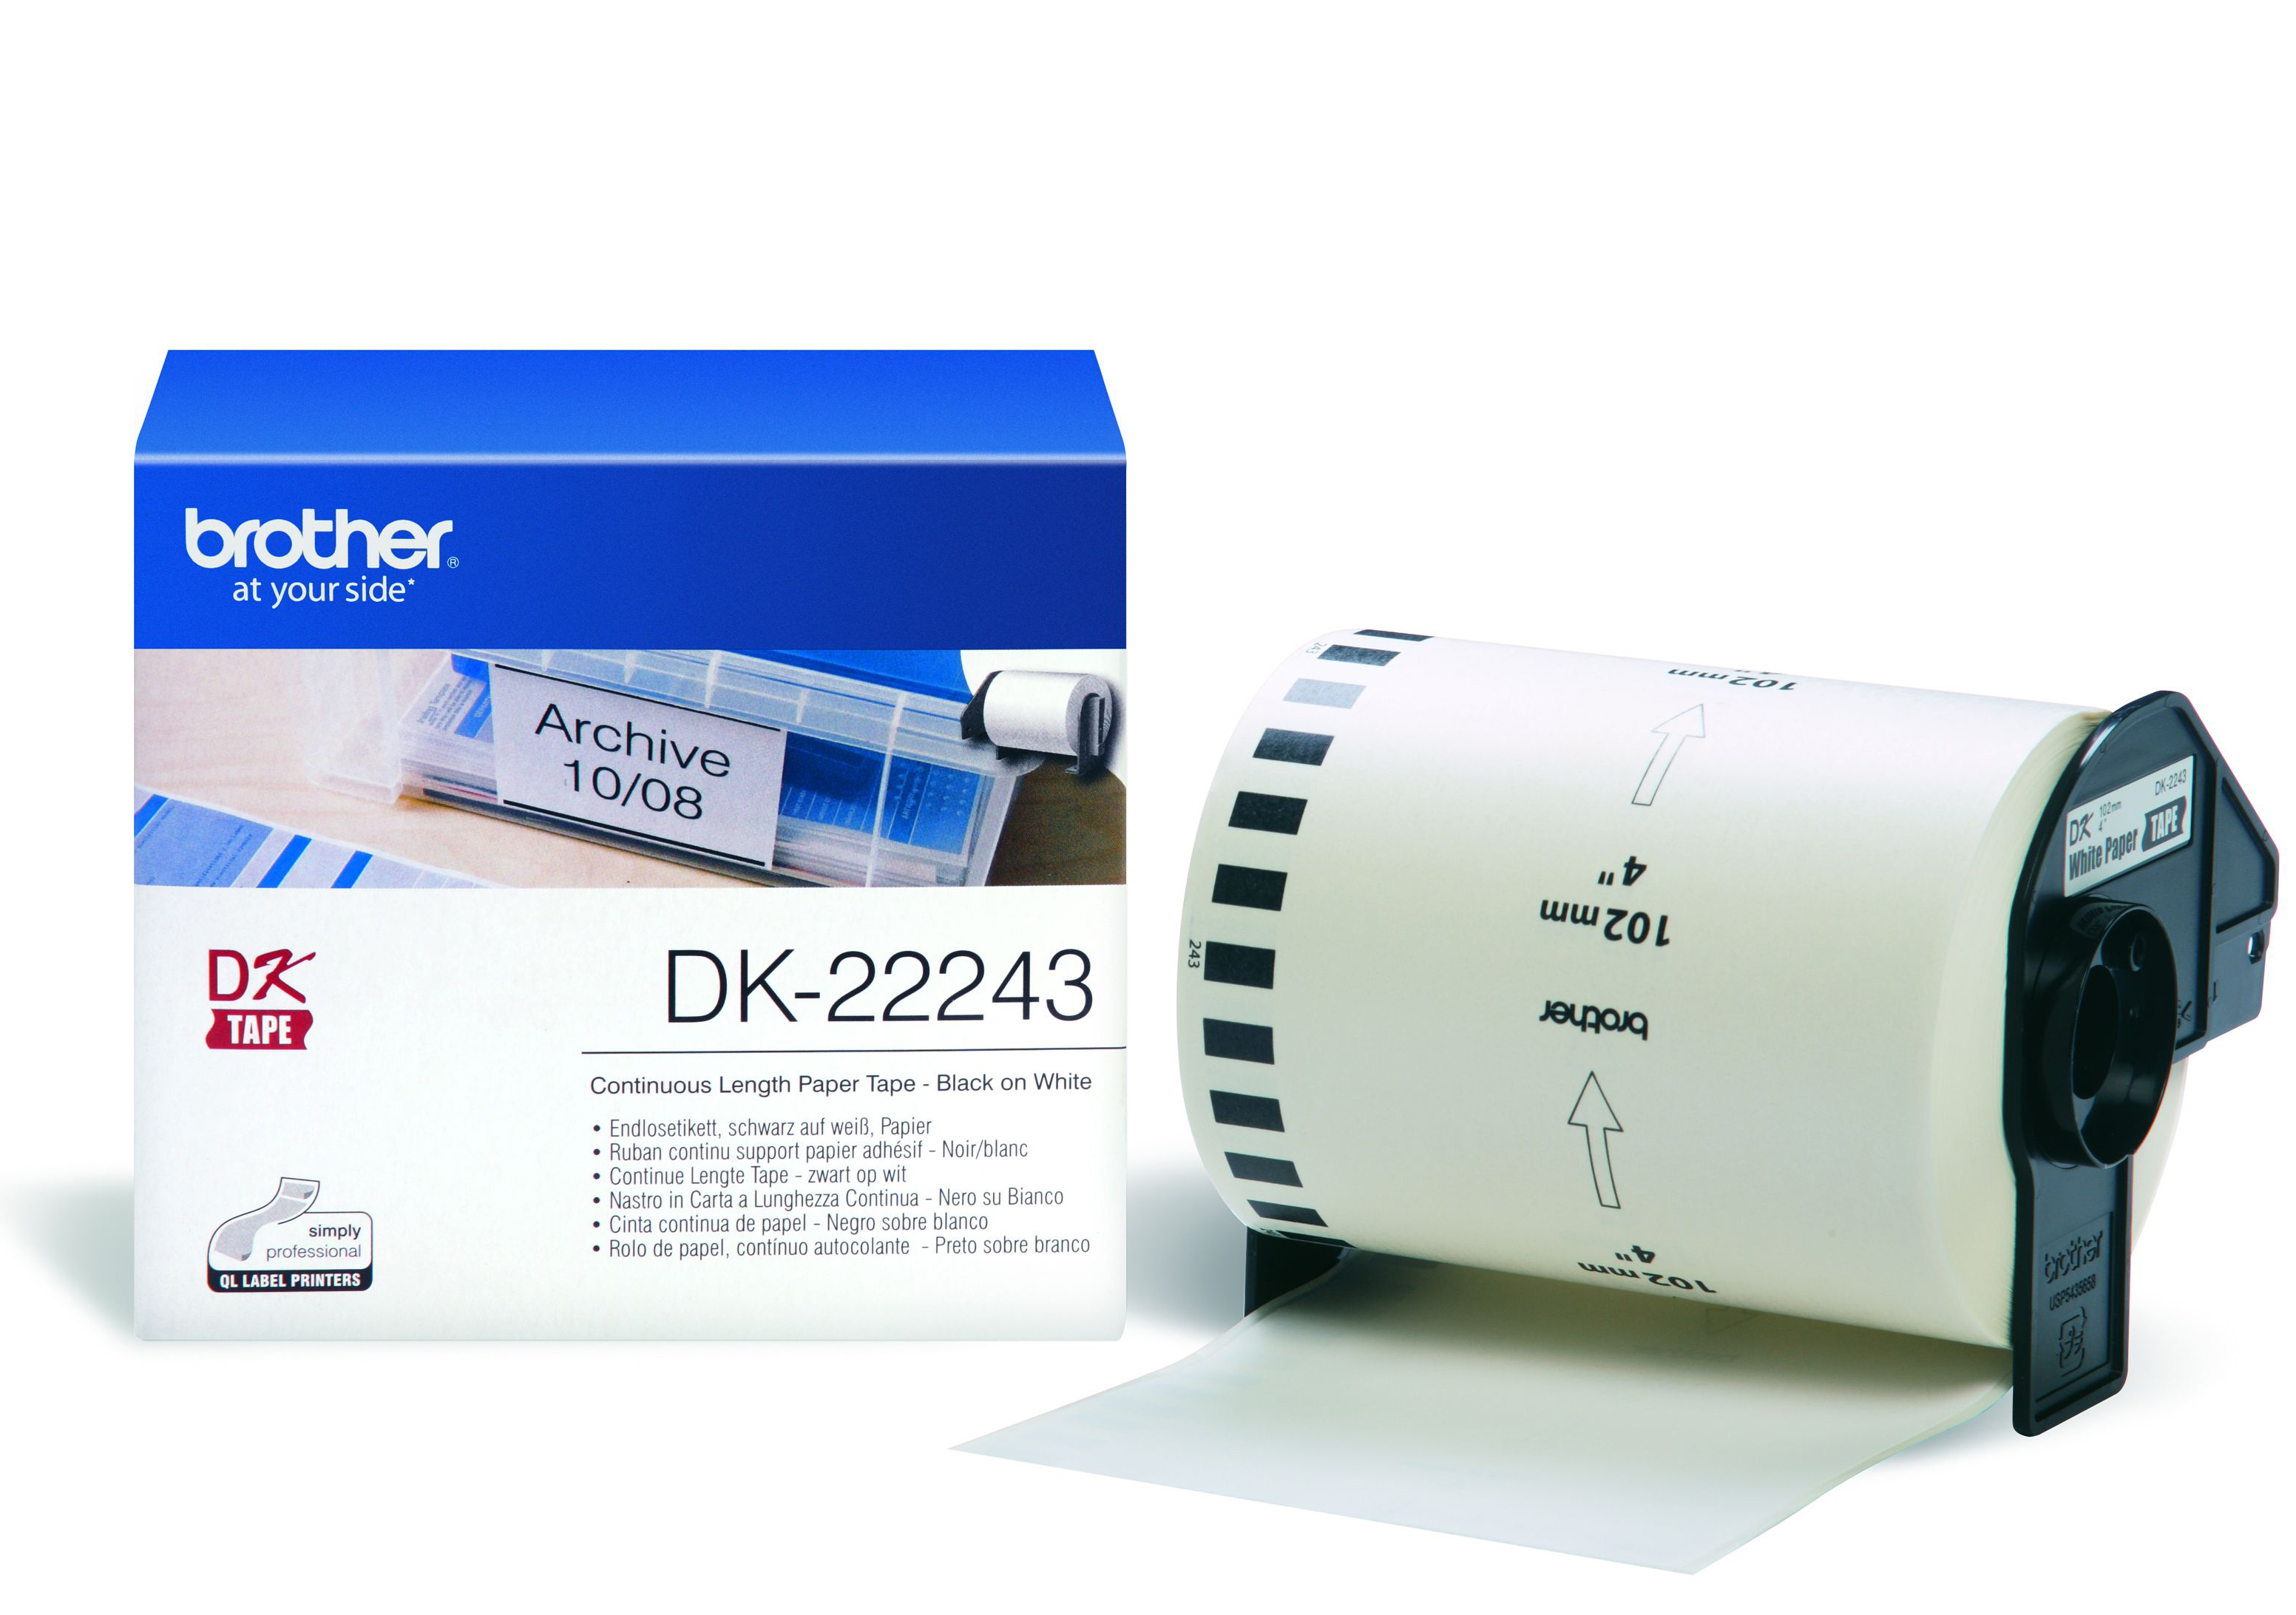 BROTHER P-Touch DK-22243 continue length - Thermisch Papier - weiss 102mm x 30.48m Only for QL-1050(N)/-1060N